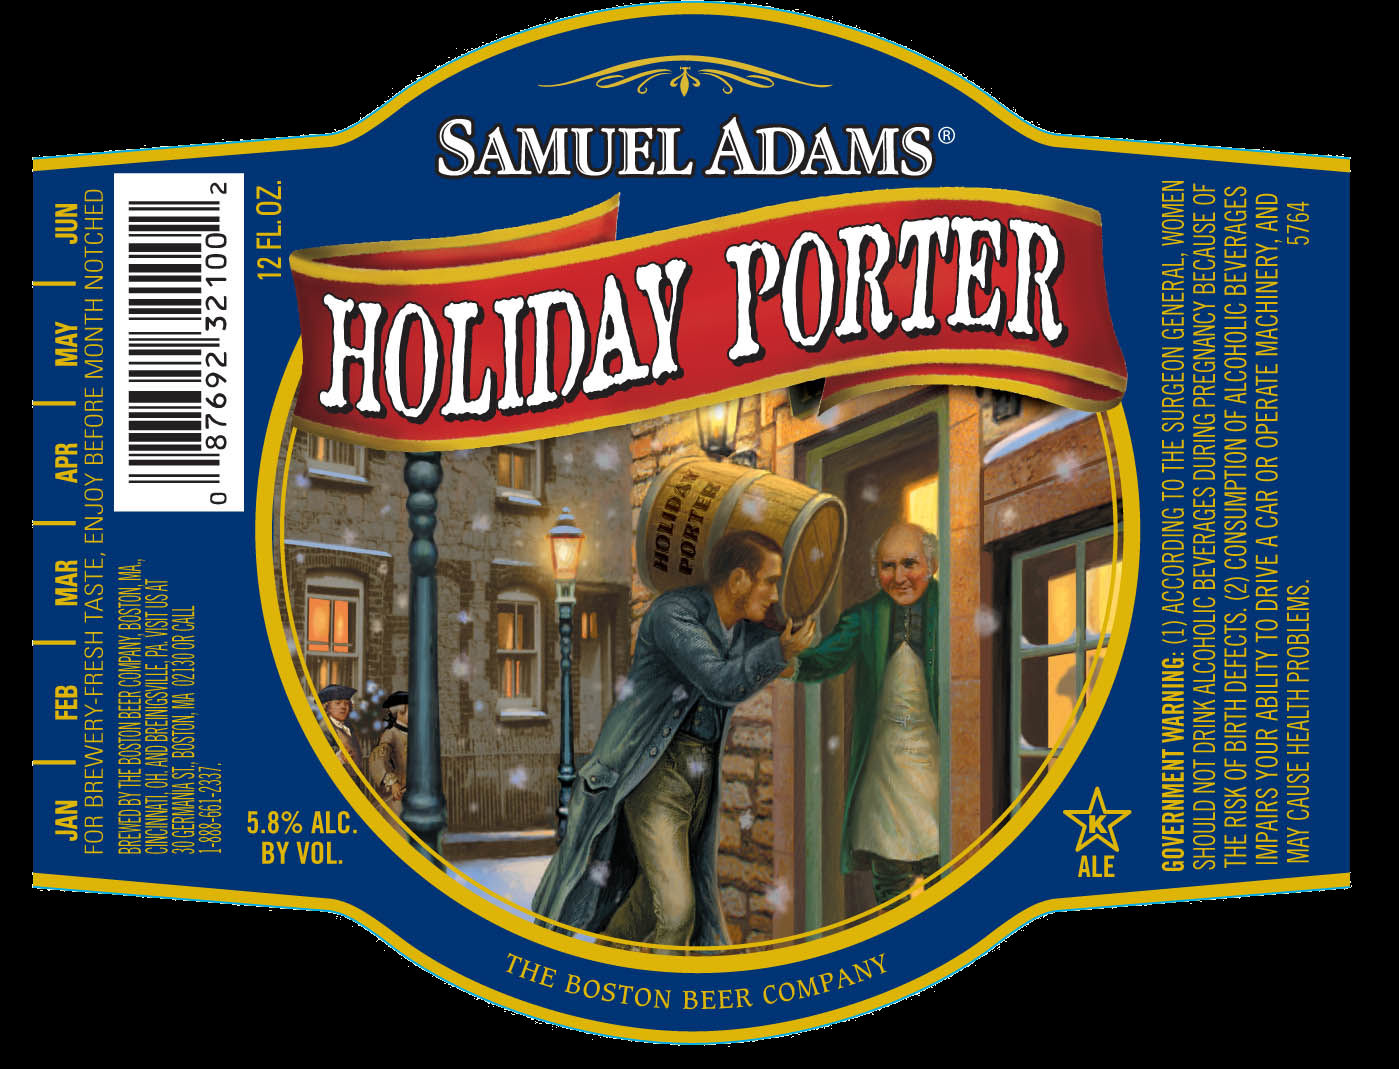 Samuel Adams Holiday Porter(사무엘 아담스..